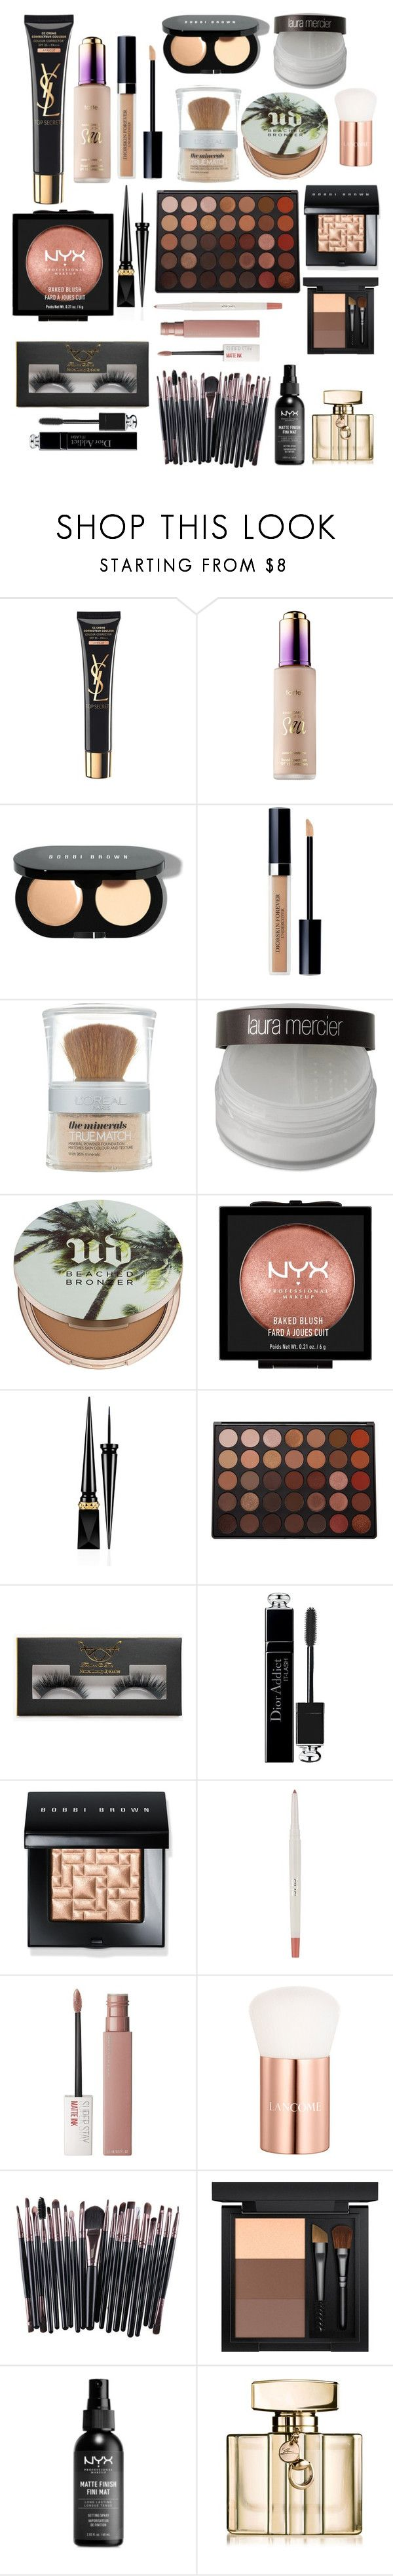 """""""Untitled #2677"""" by mfr-mtz ❤ liked on Polyvore featuring Yves Saint Laurent, tarte, Bobbi Brown Cosmetics, Christian Dior, L'Oréal Paris, Laura Mercier, Urban Decay, NYX, Christian Louboutin and Morphe"""